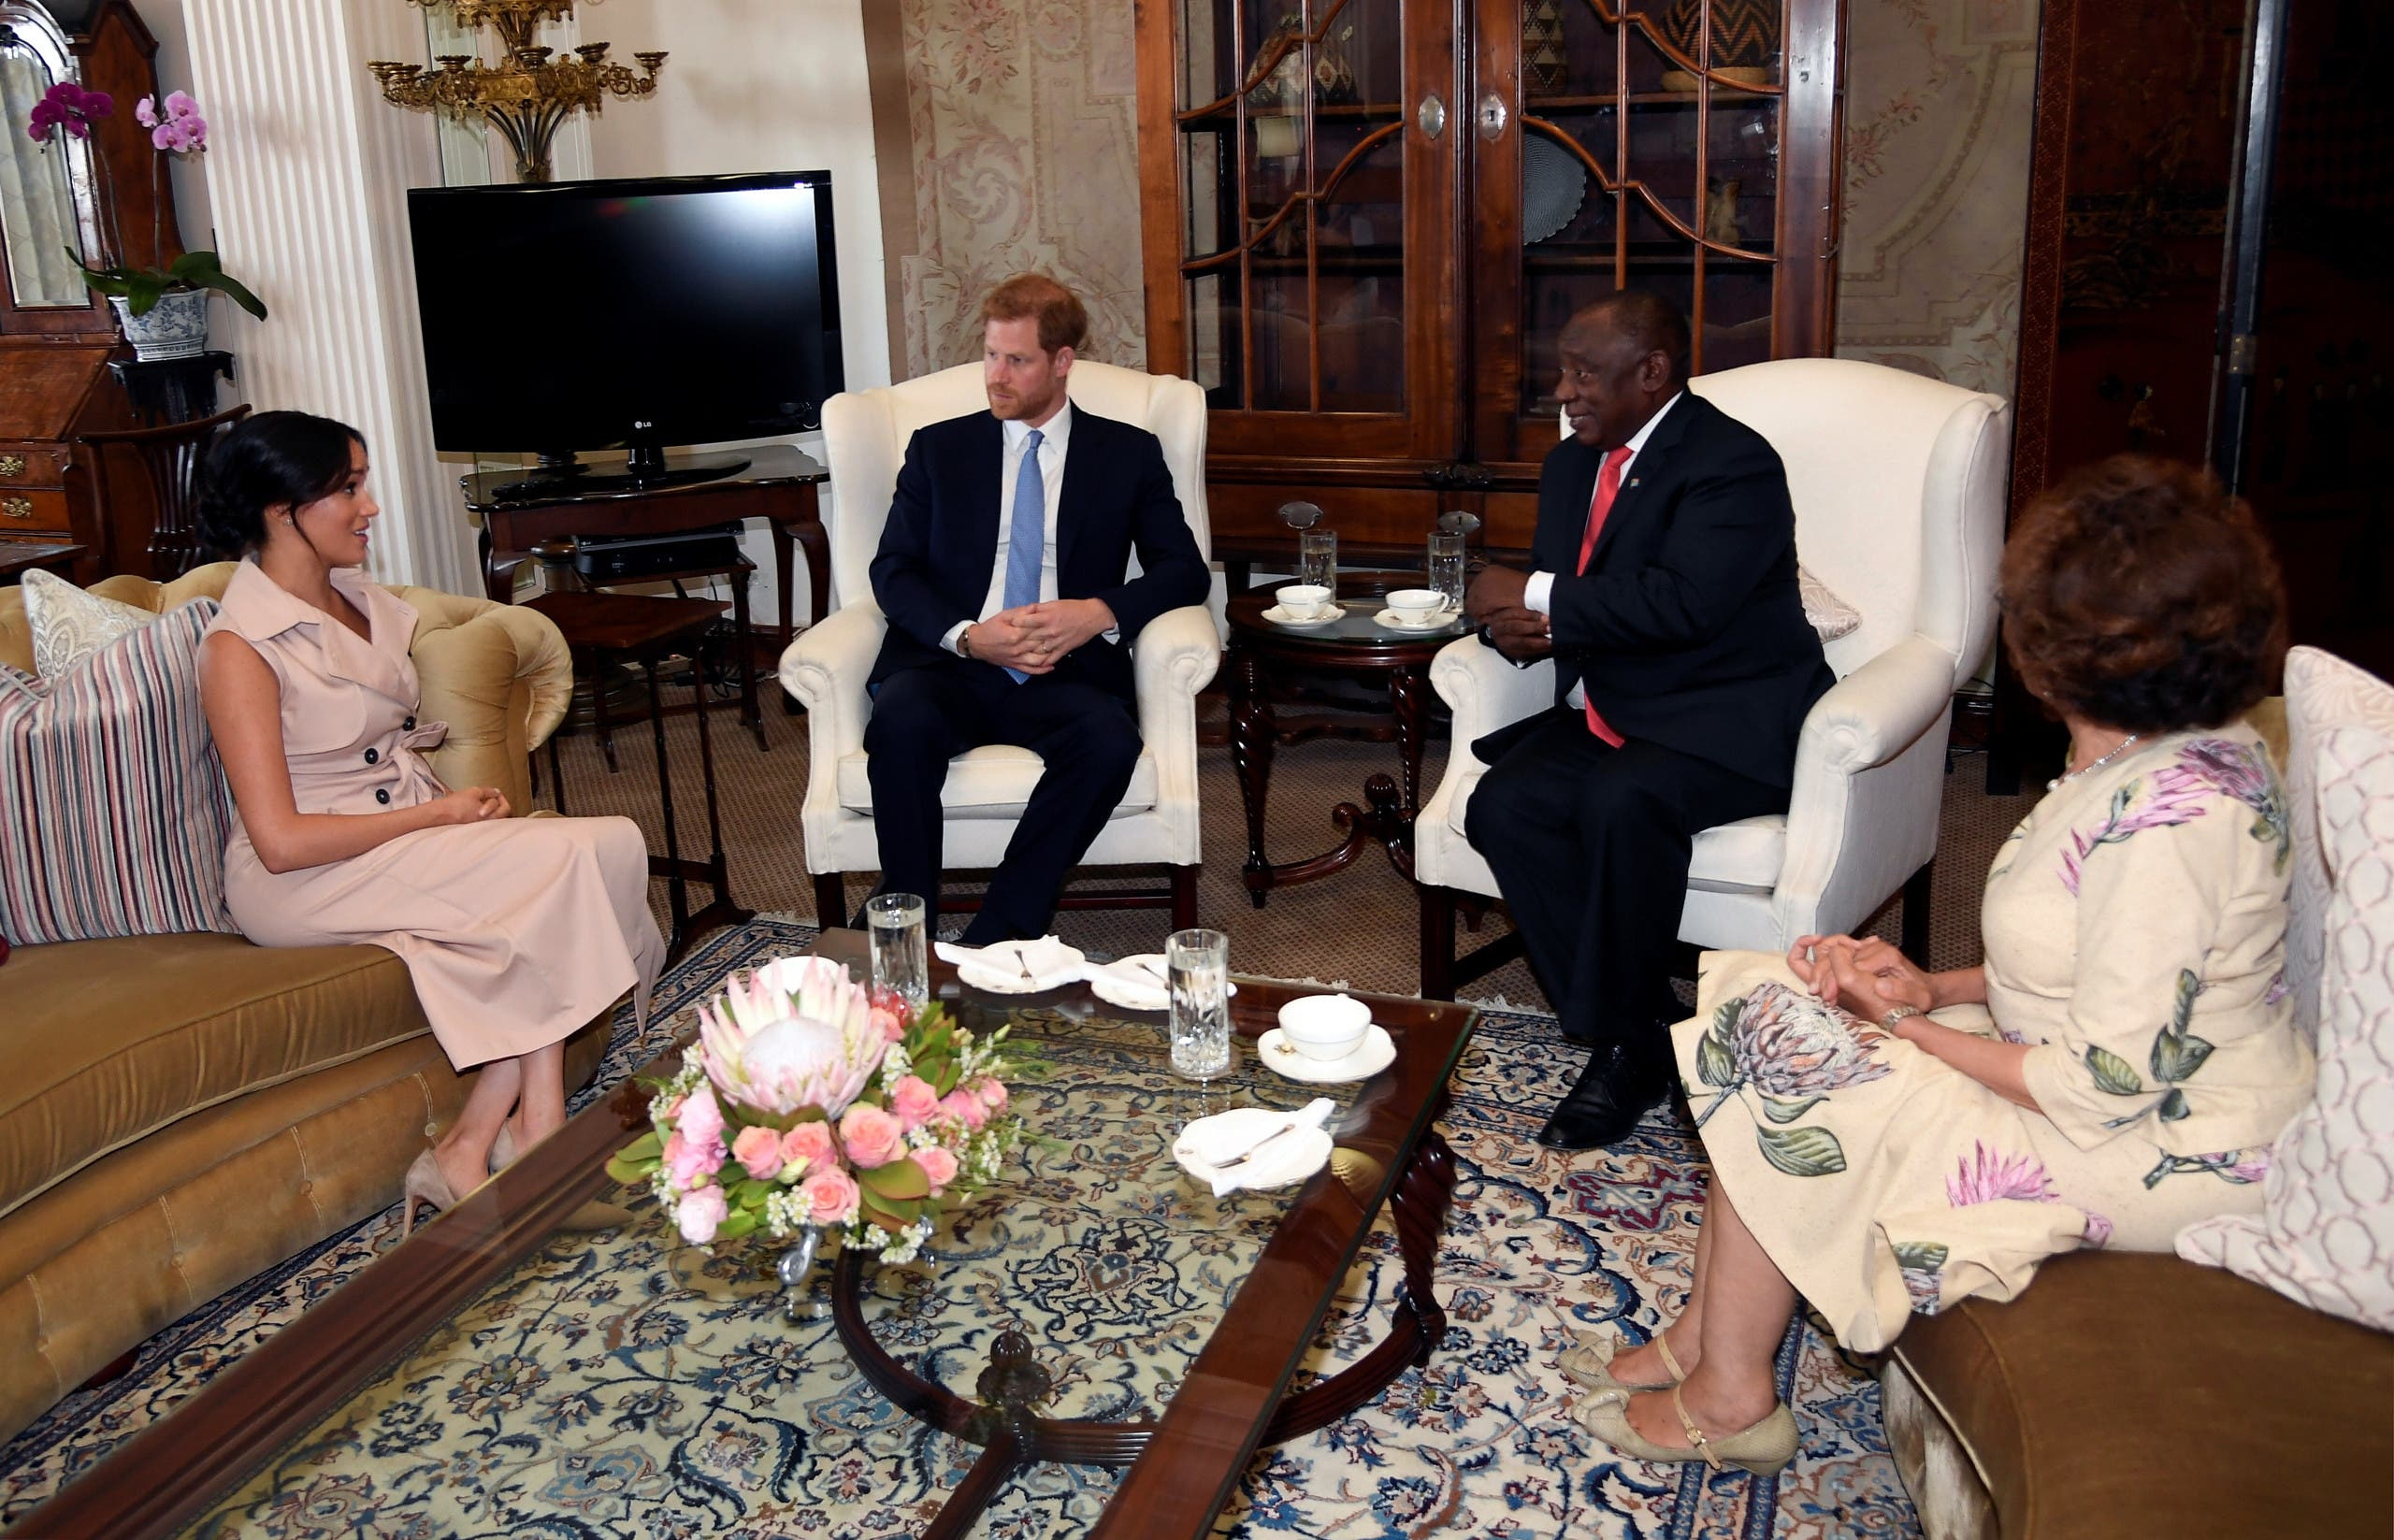 Britain's Prince Harry, Duke of Sussex and Meghan, Duchess of Sussex, meet with South Africa's President Cyril Ramaphosa and his wife Tshepo Motsepe at Presidential Official Residence in Pretoria, South Africa, October 2, 2019. (Reuters)